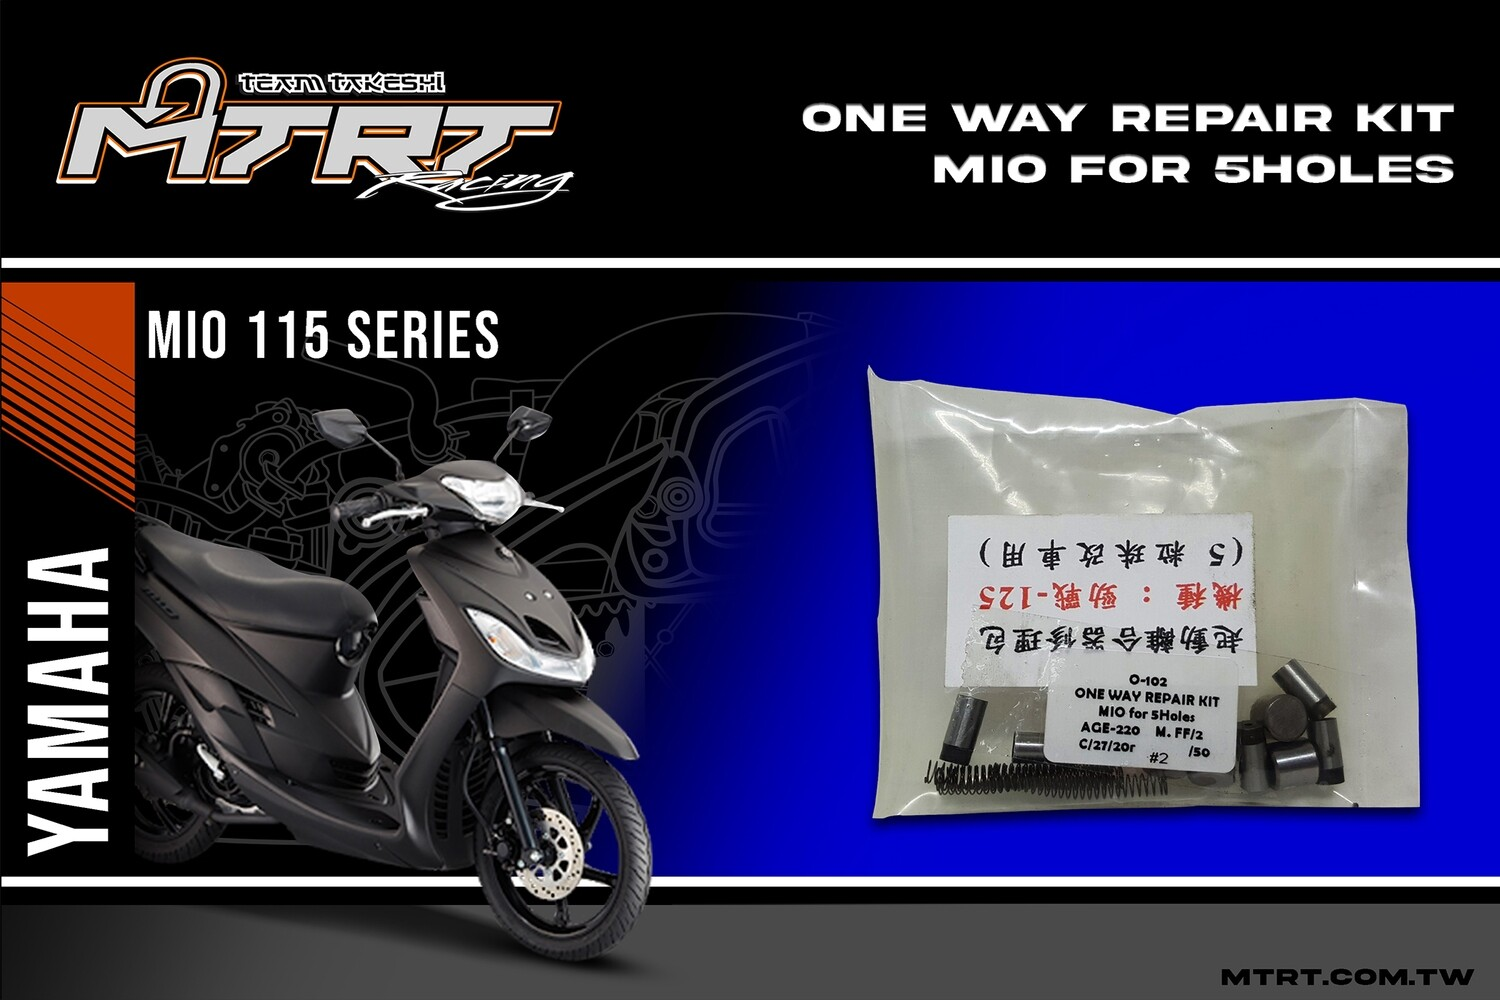 ONE WAY REPAIR KIT MIO FOR 5 HOLES